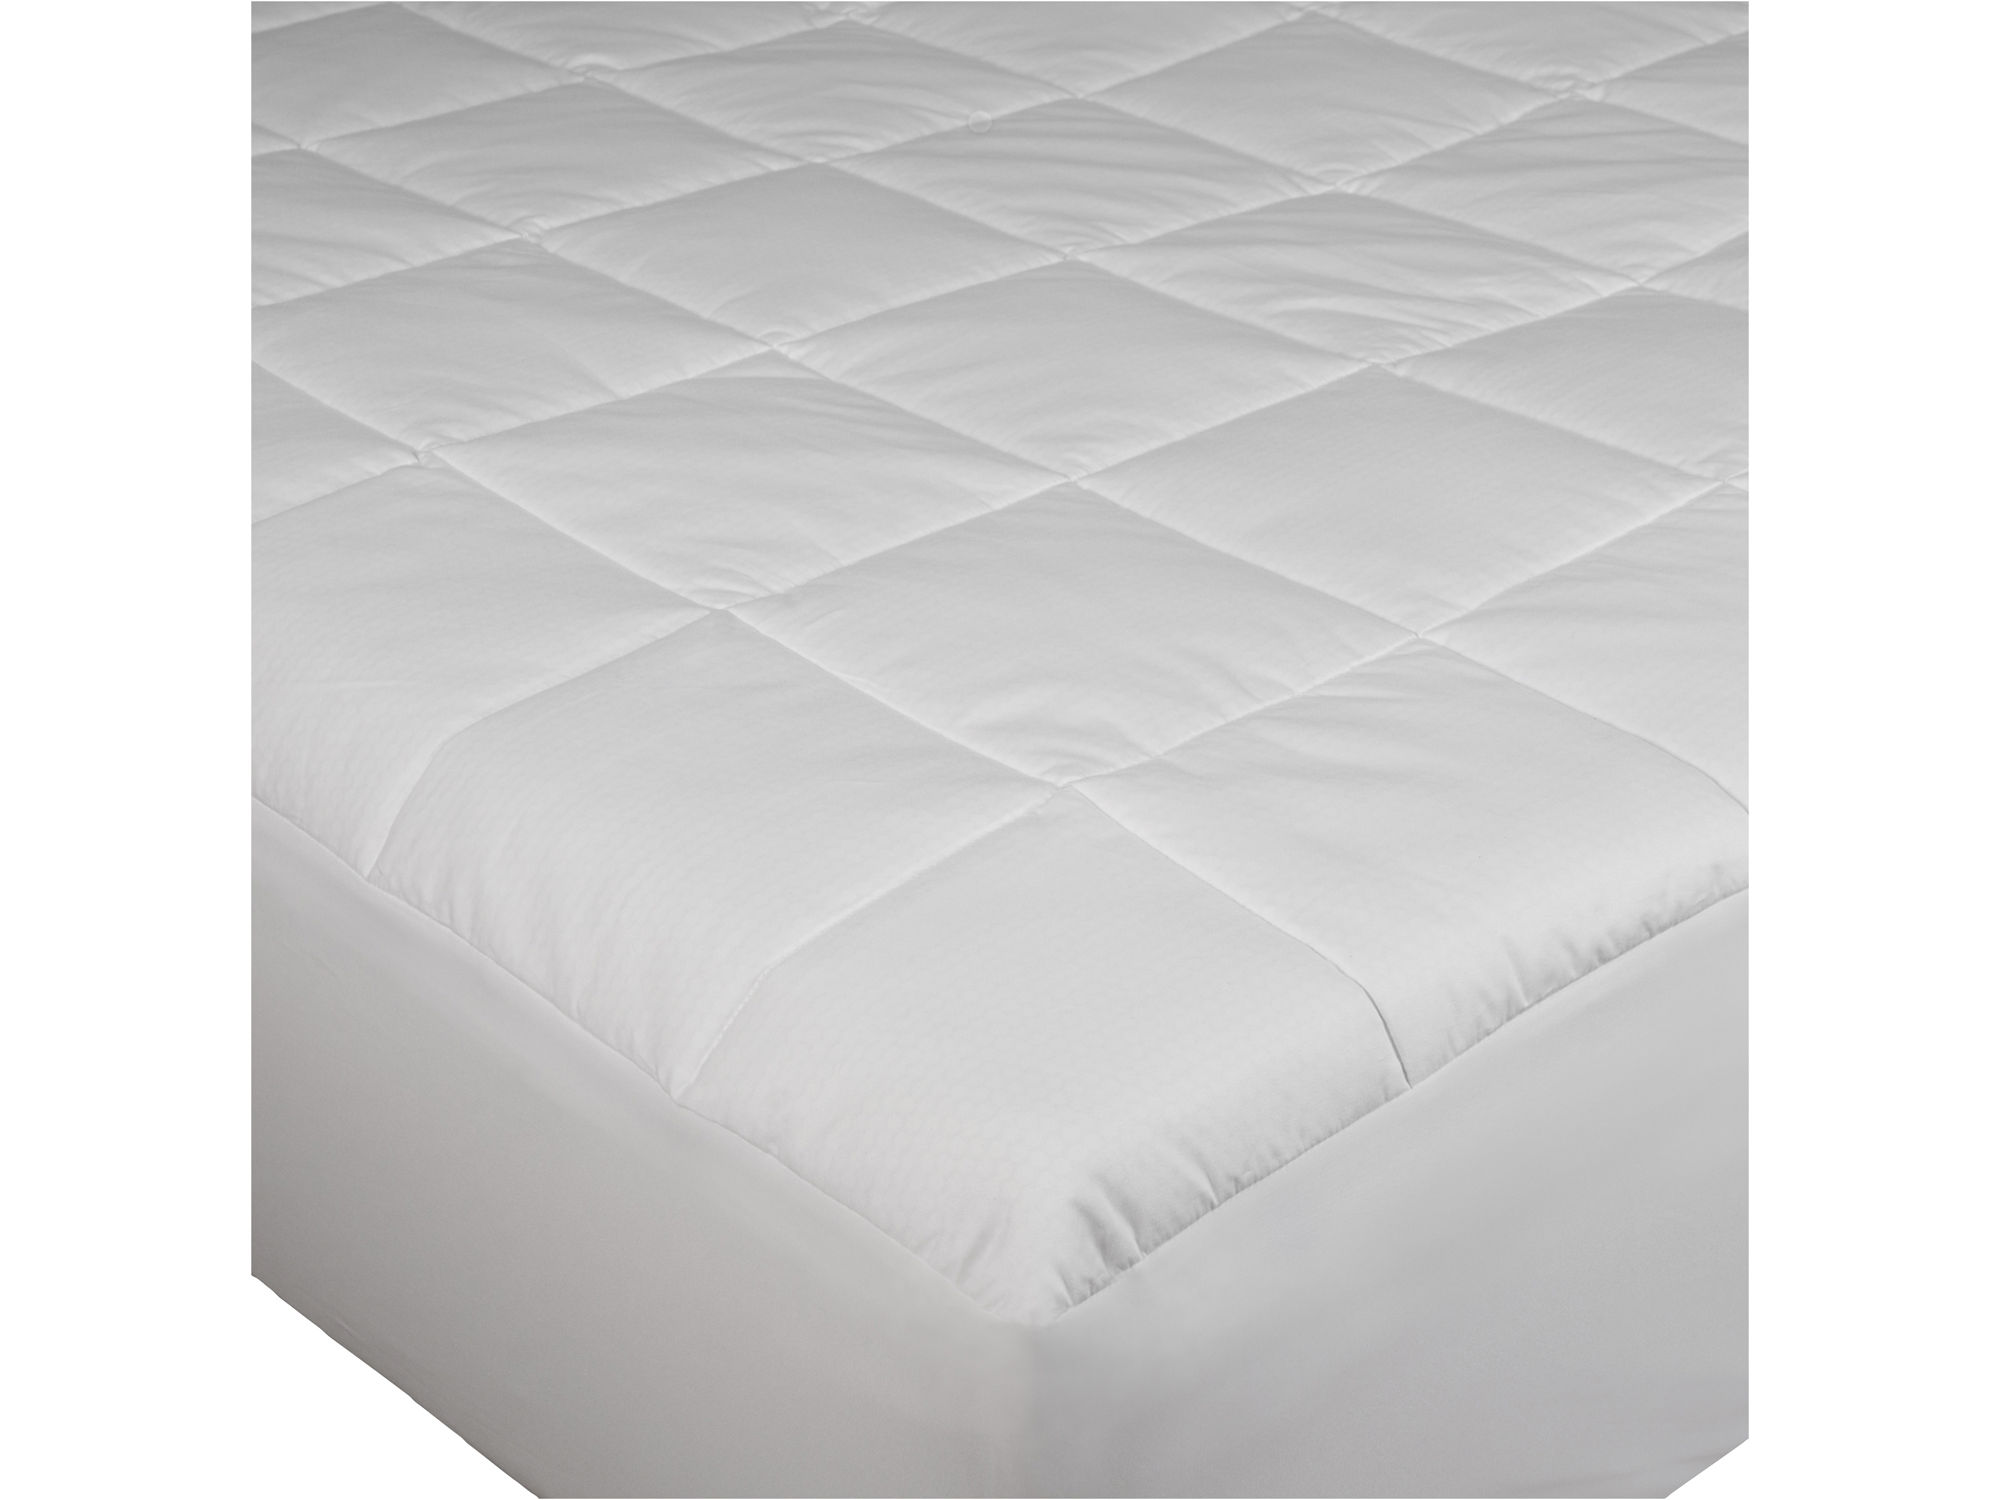 Magnetic Mattress Pads Jcpenney Search